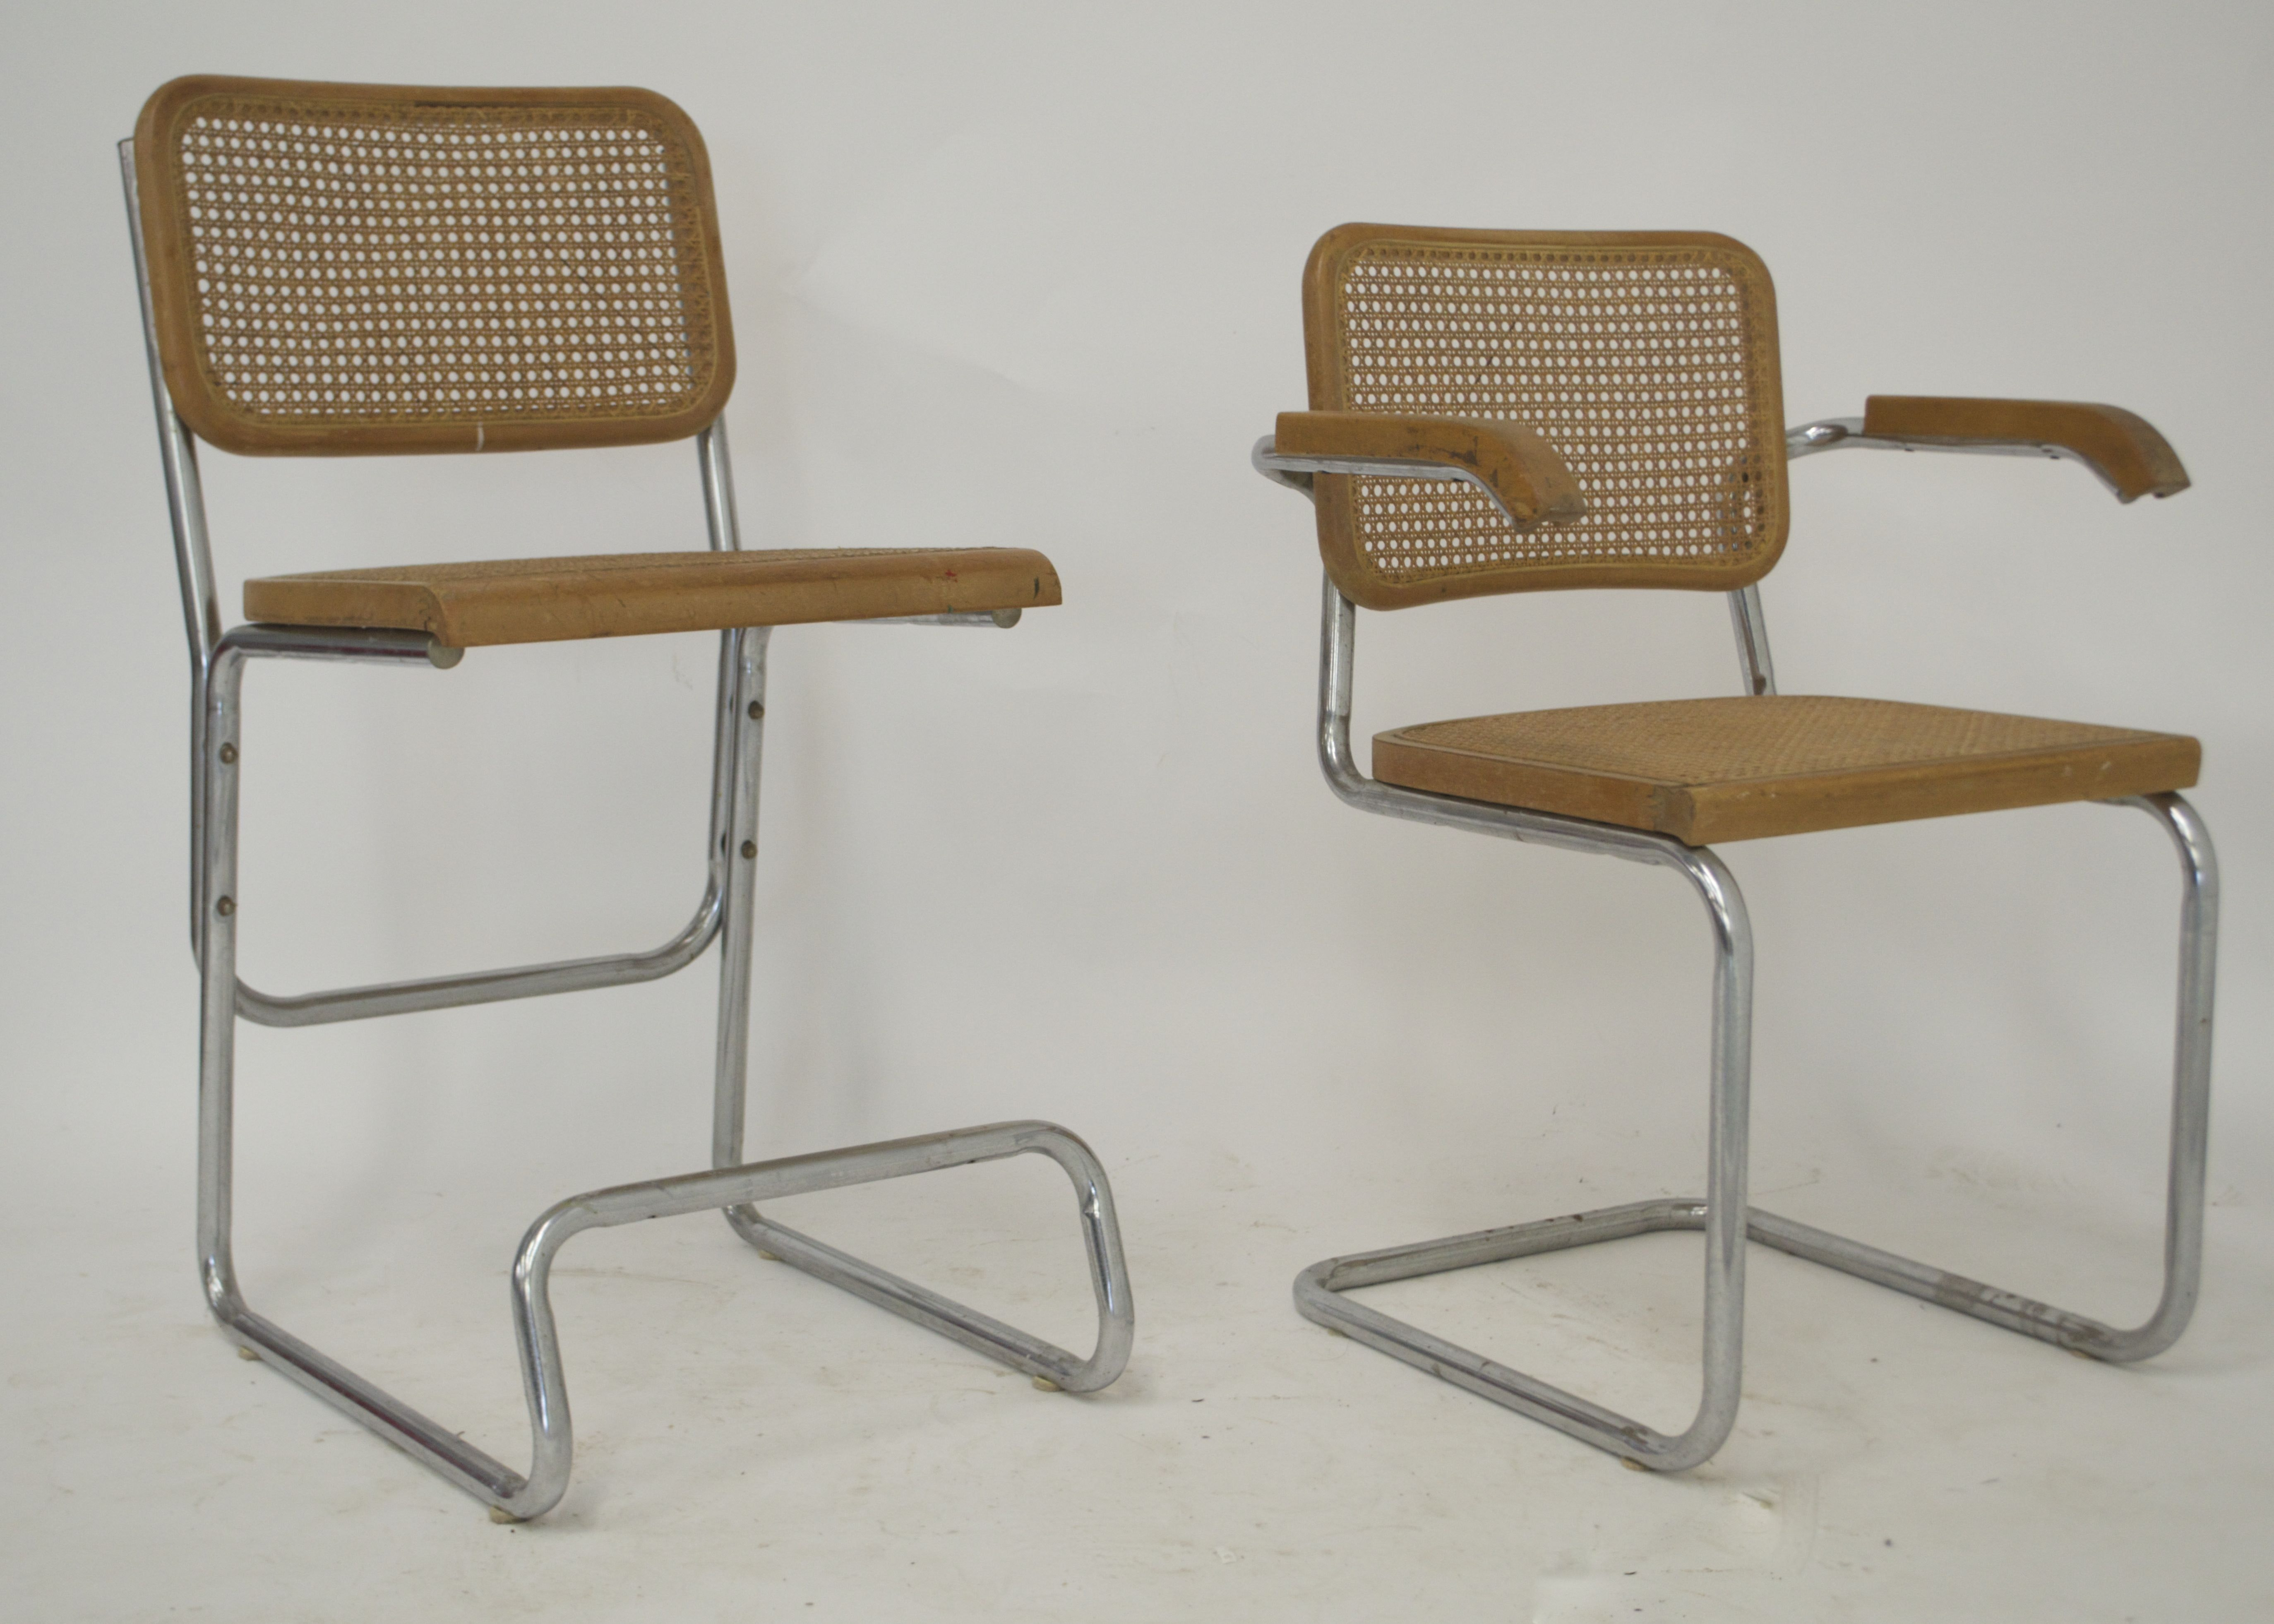 Four Vintage Cesca Inspired Steel Chairs With Caned Seats